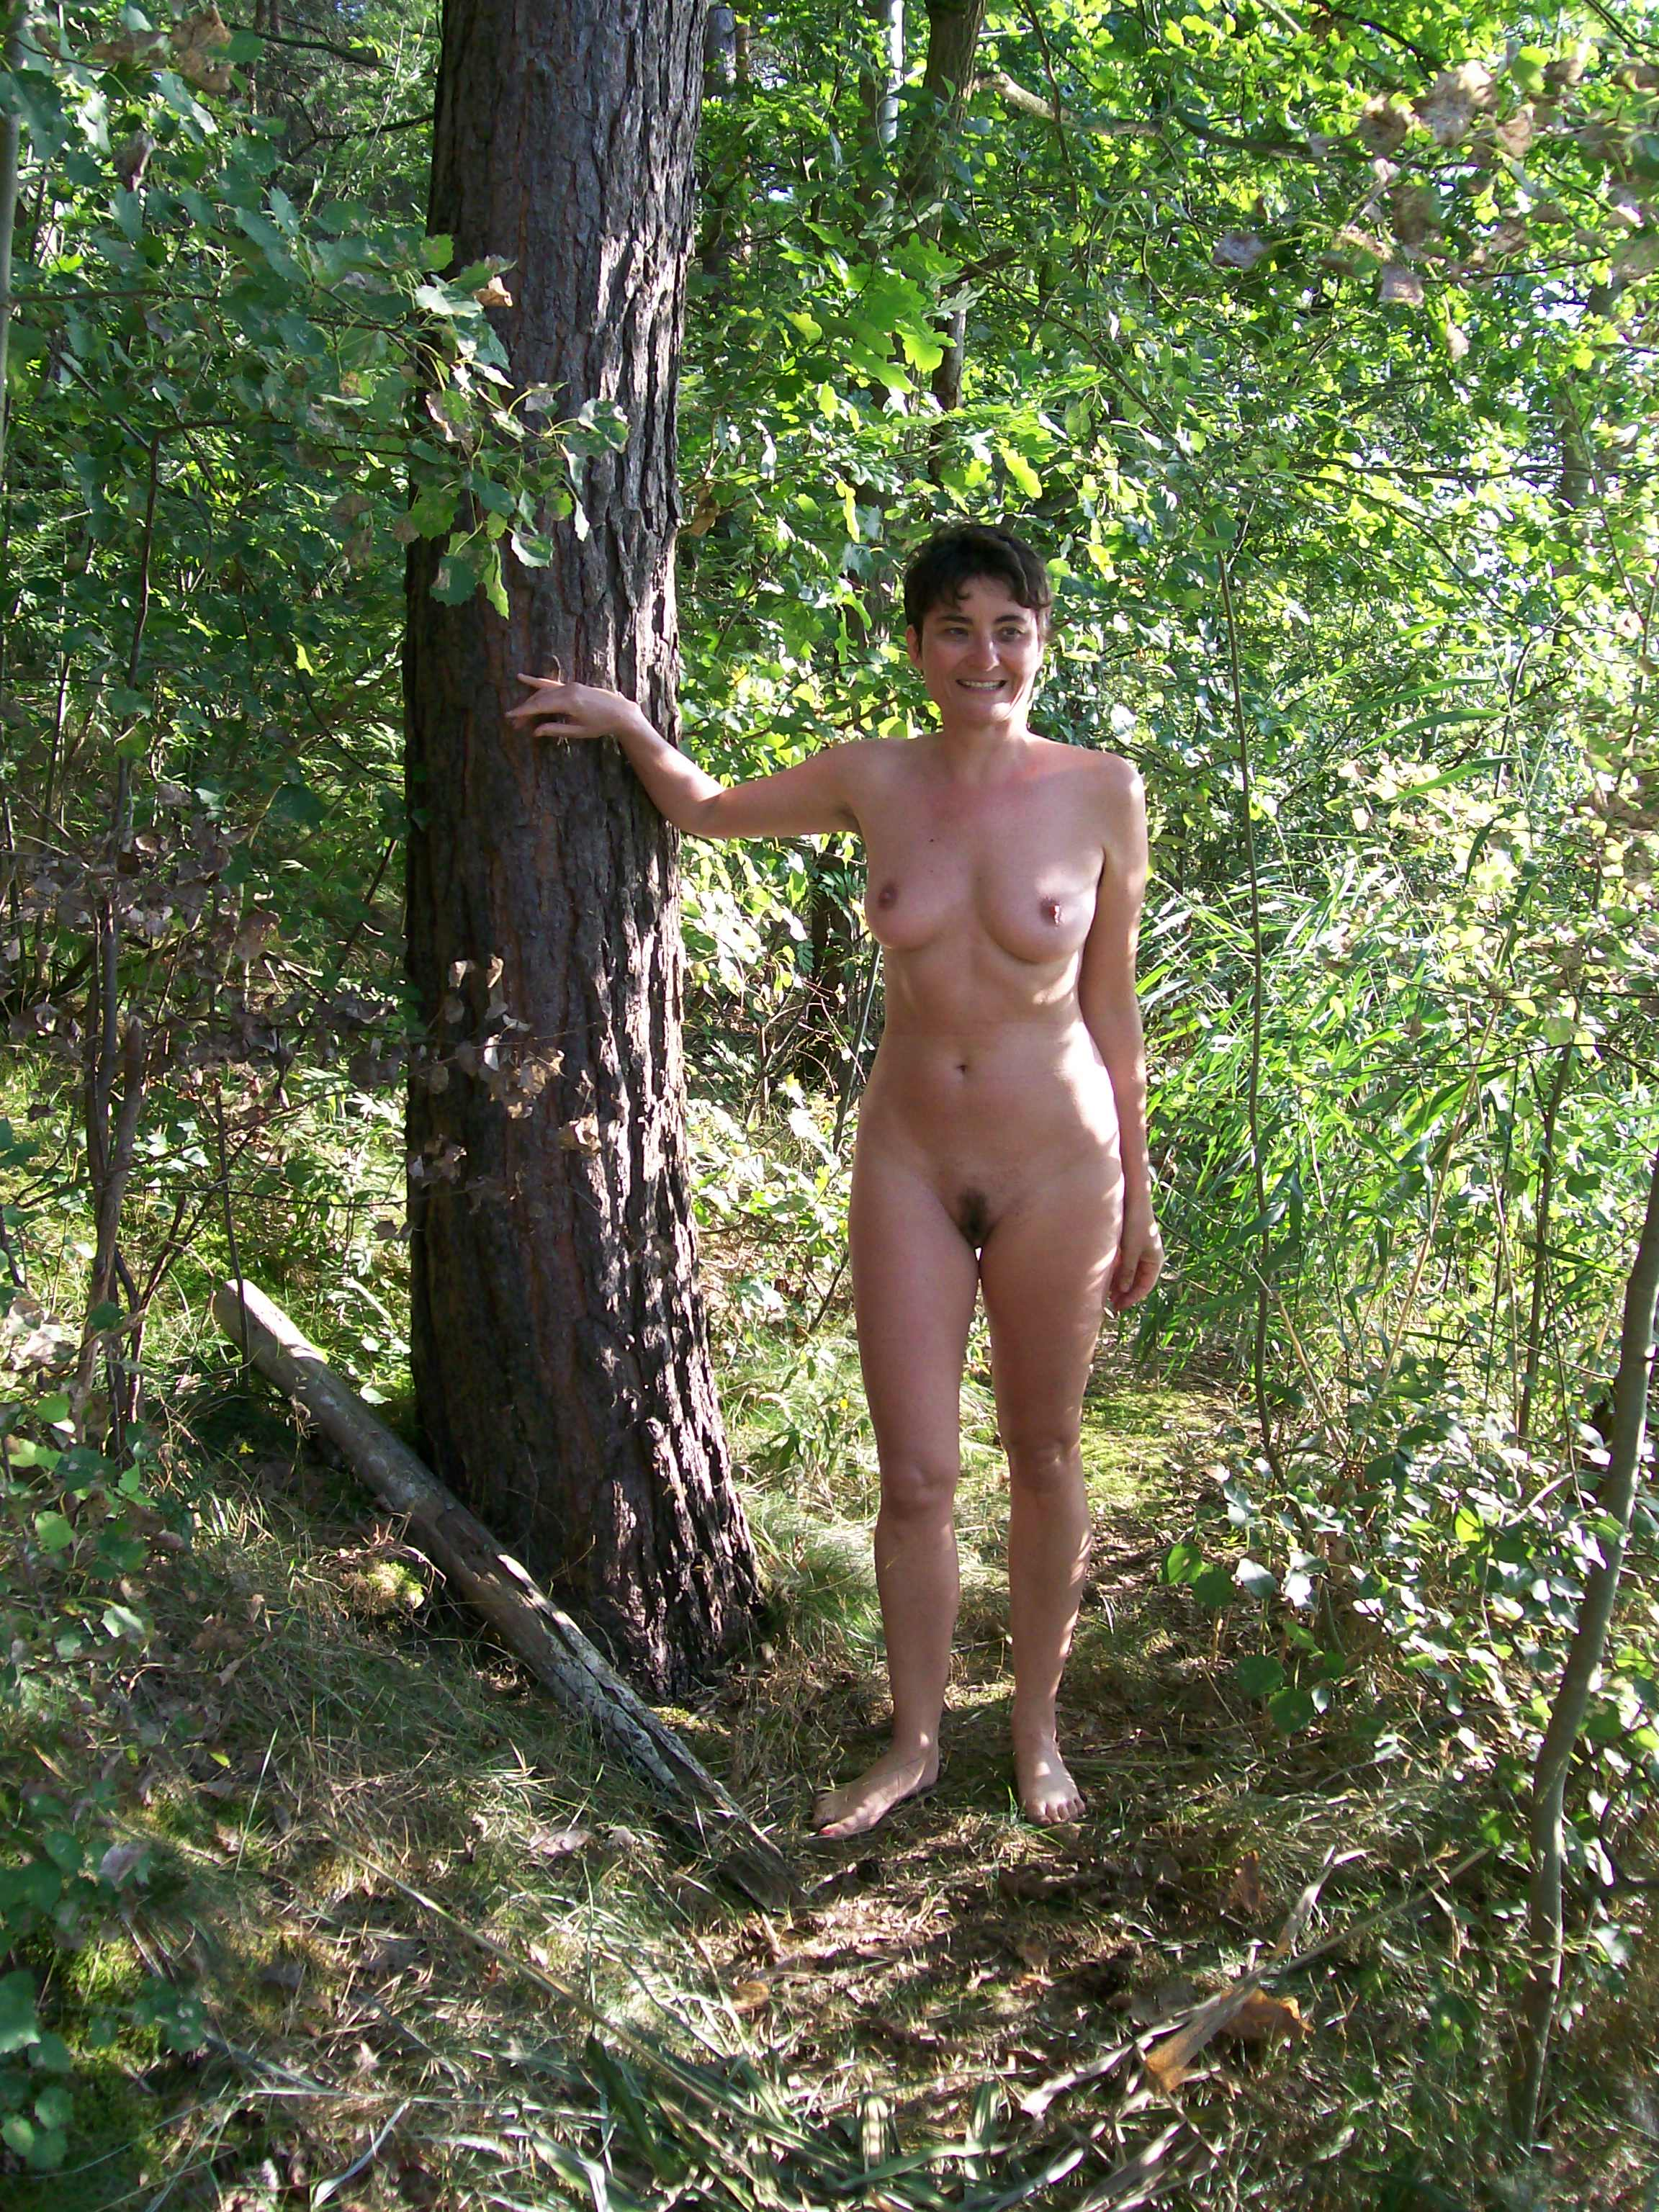 Nude male contest for women